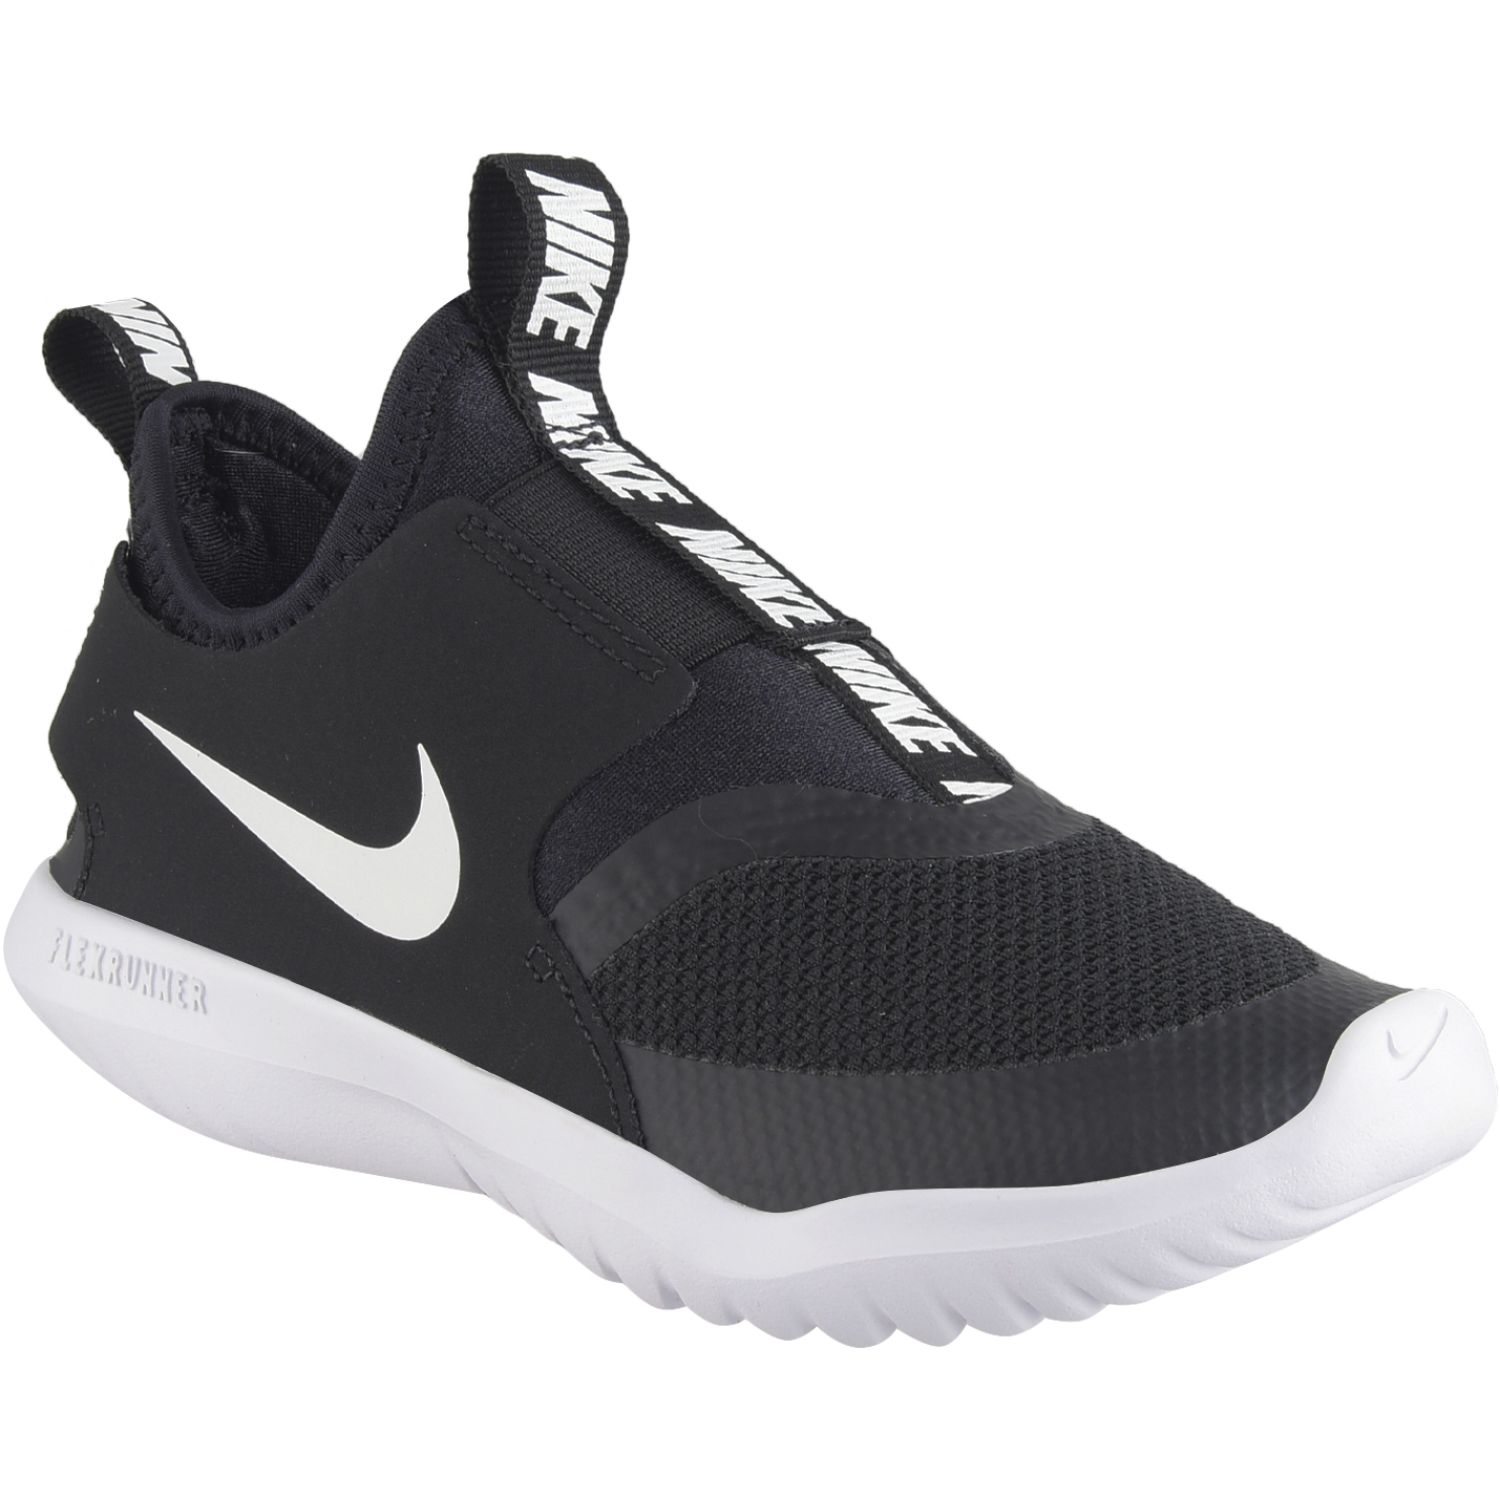 Nike nike future flex psv Negro / blanco Walking